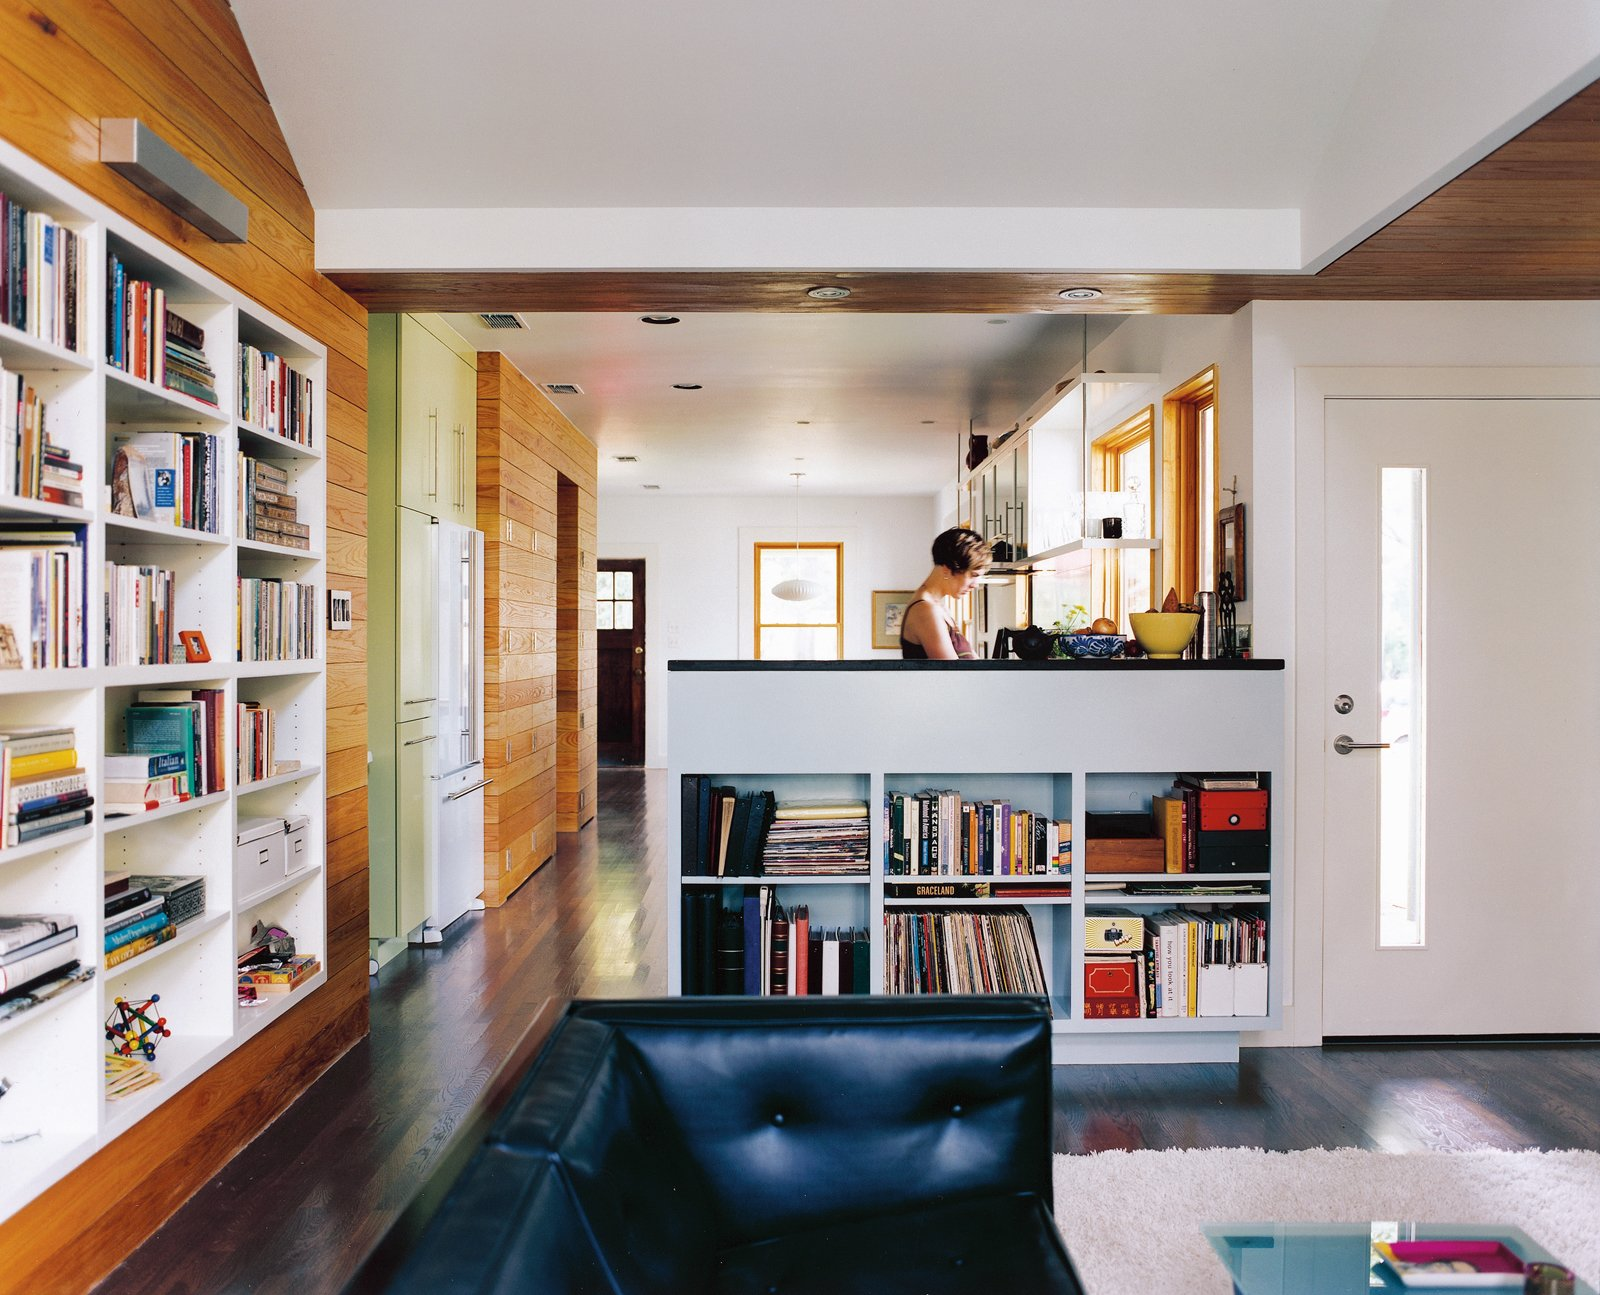 Articles about double time on Dwell.com